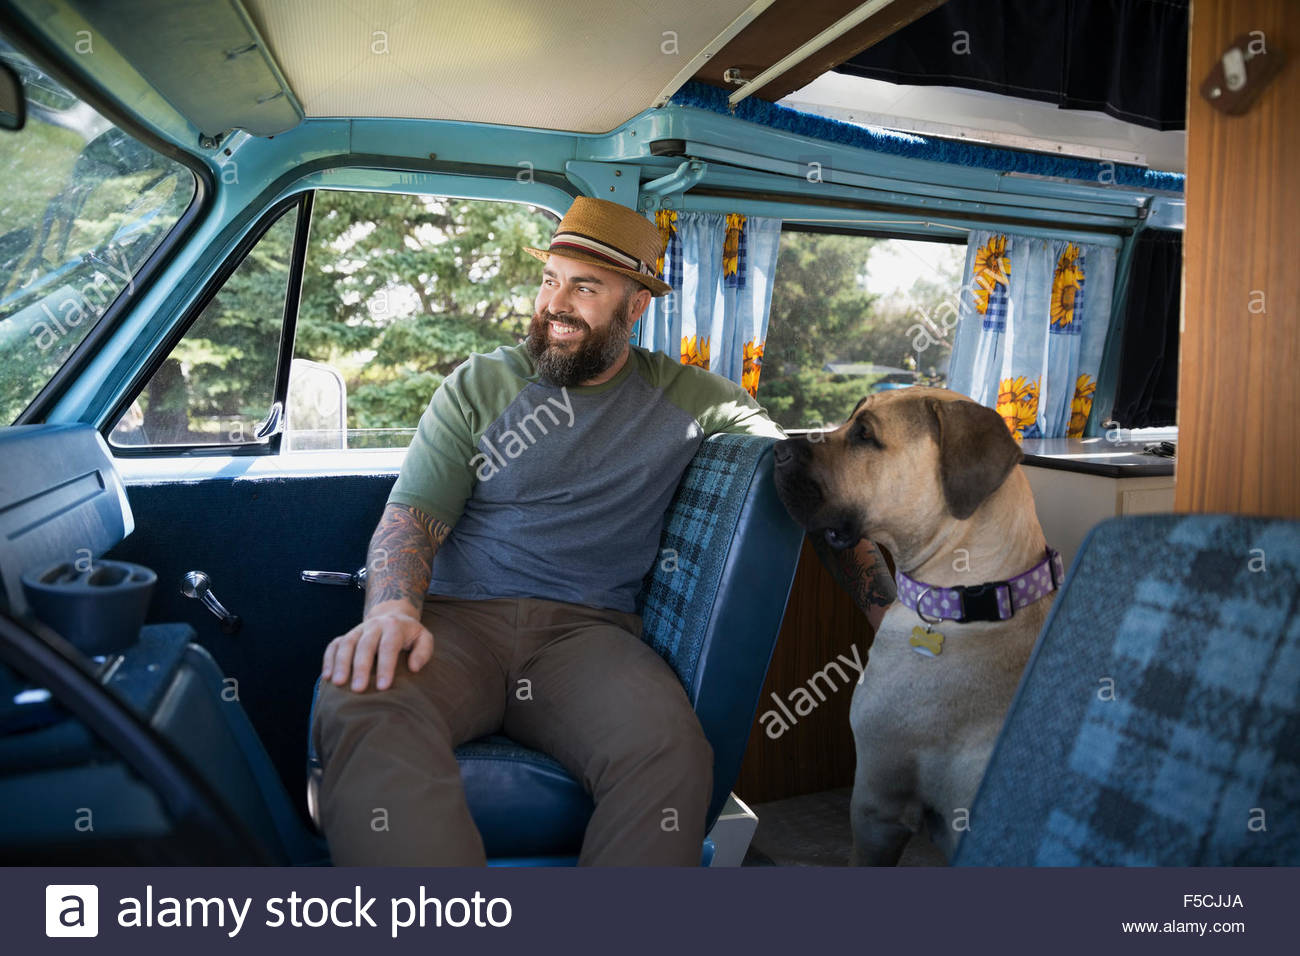 Smiling bearded man with dog in van - Stock Image